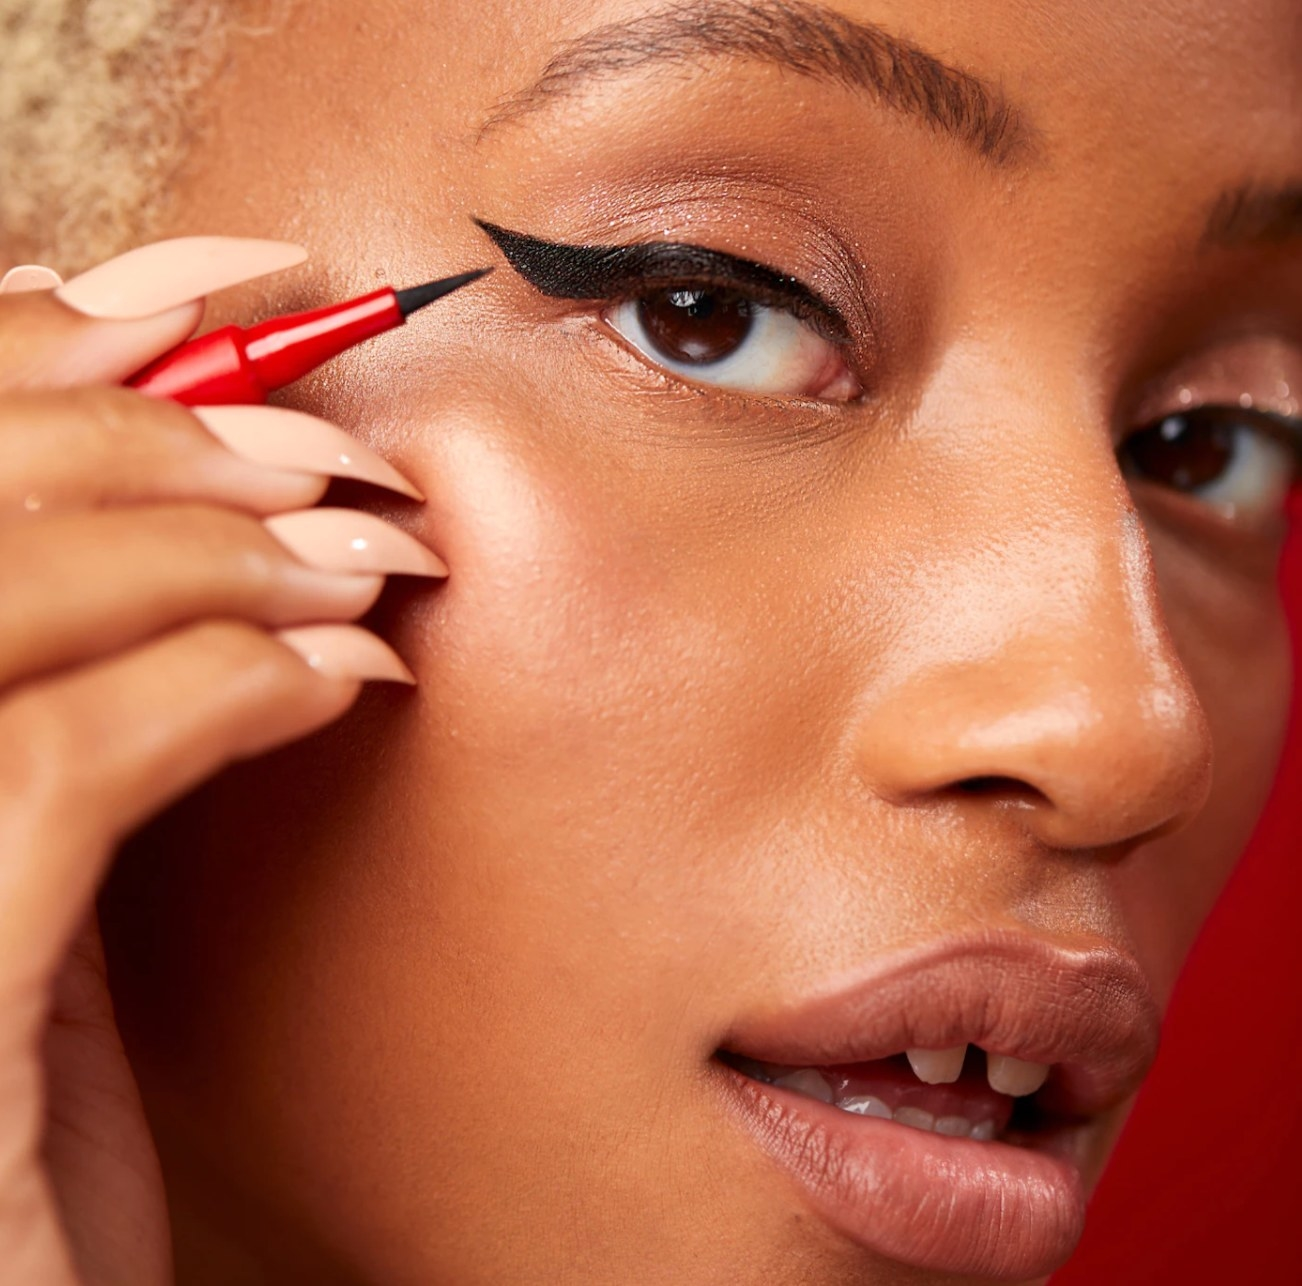 Model with cat-eye holding Patrick Starrr Point Made Liner